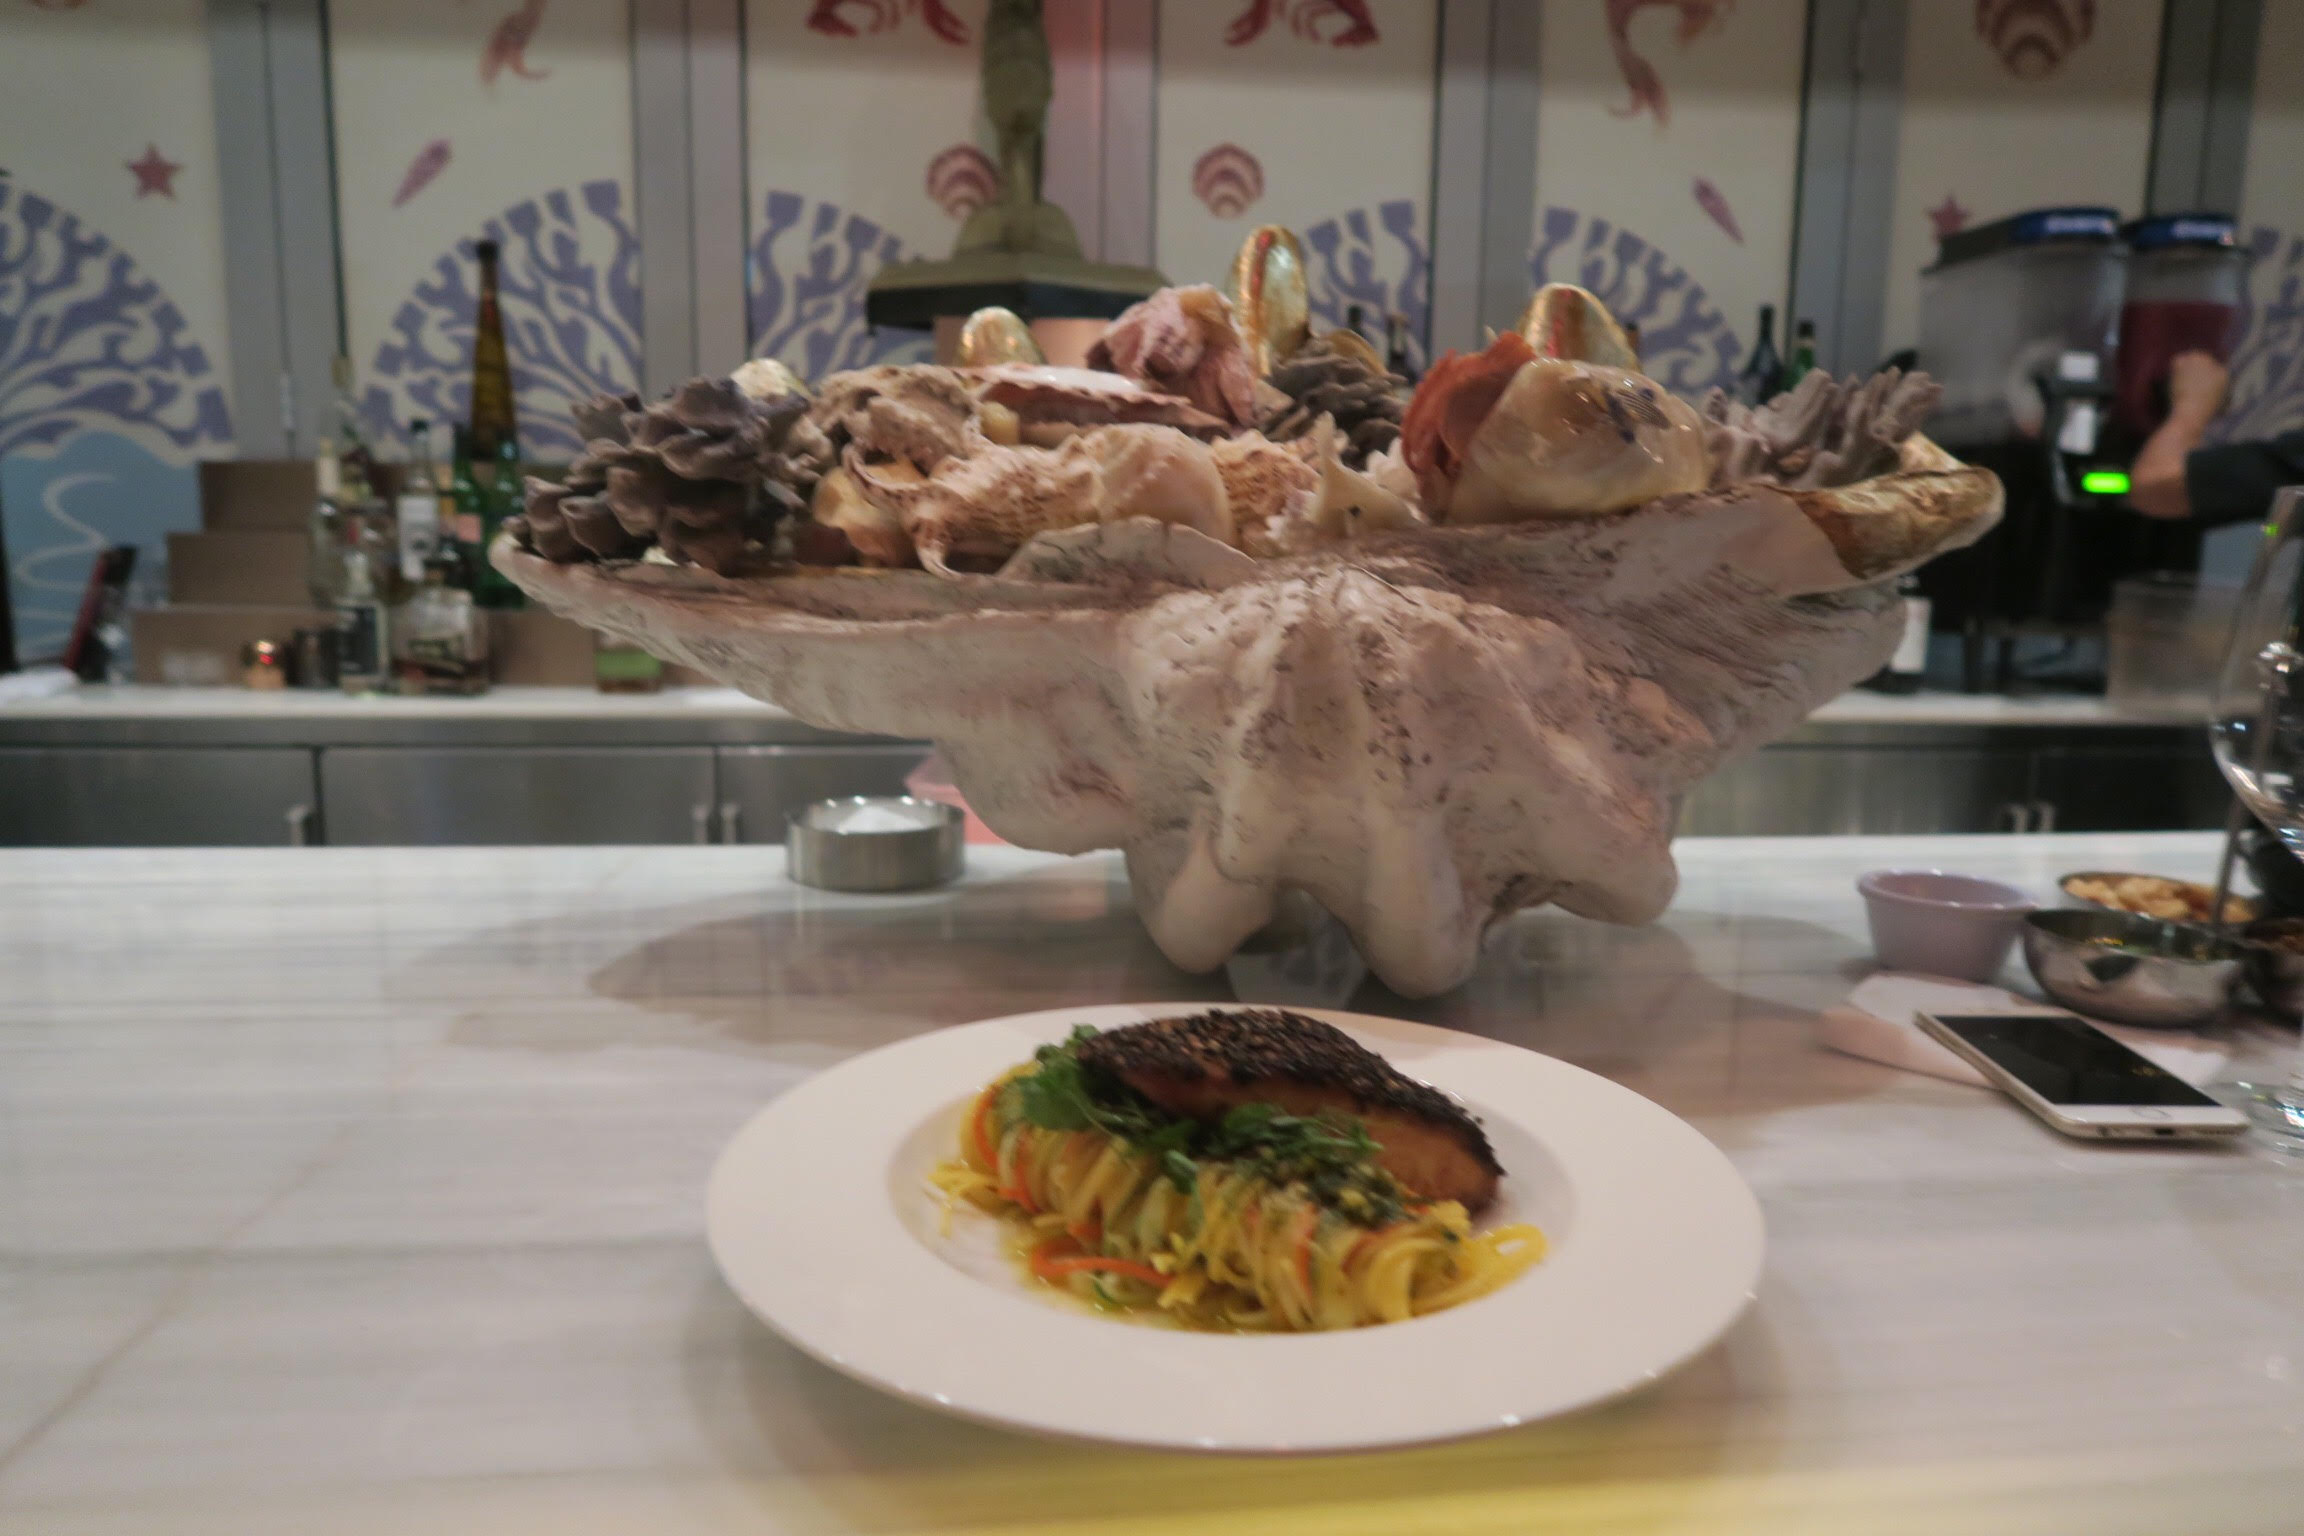 food faena hotel blog review miami beach + gluten free meal salmon noodles the best.jpg